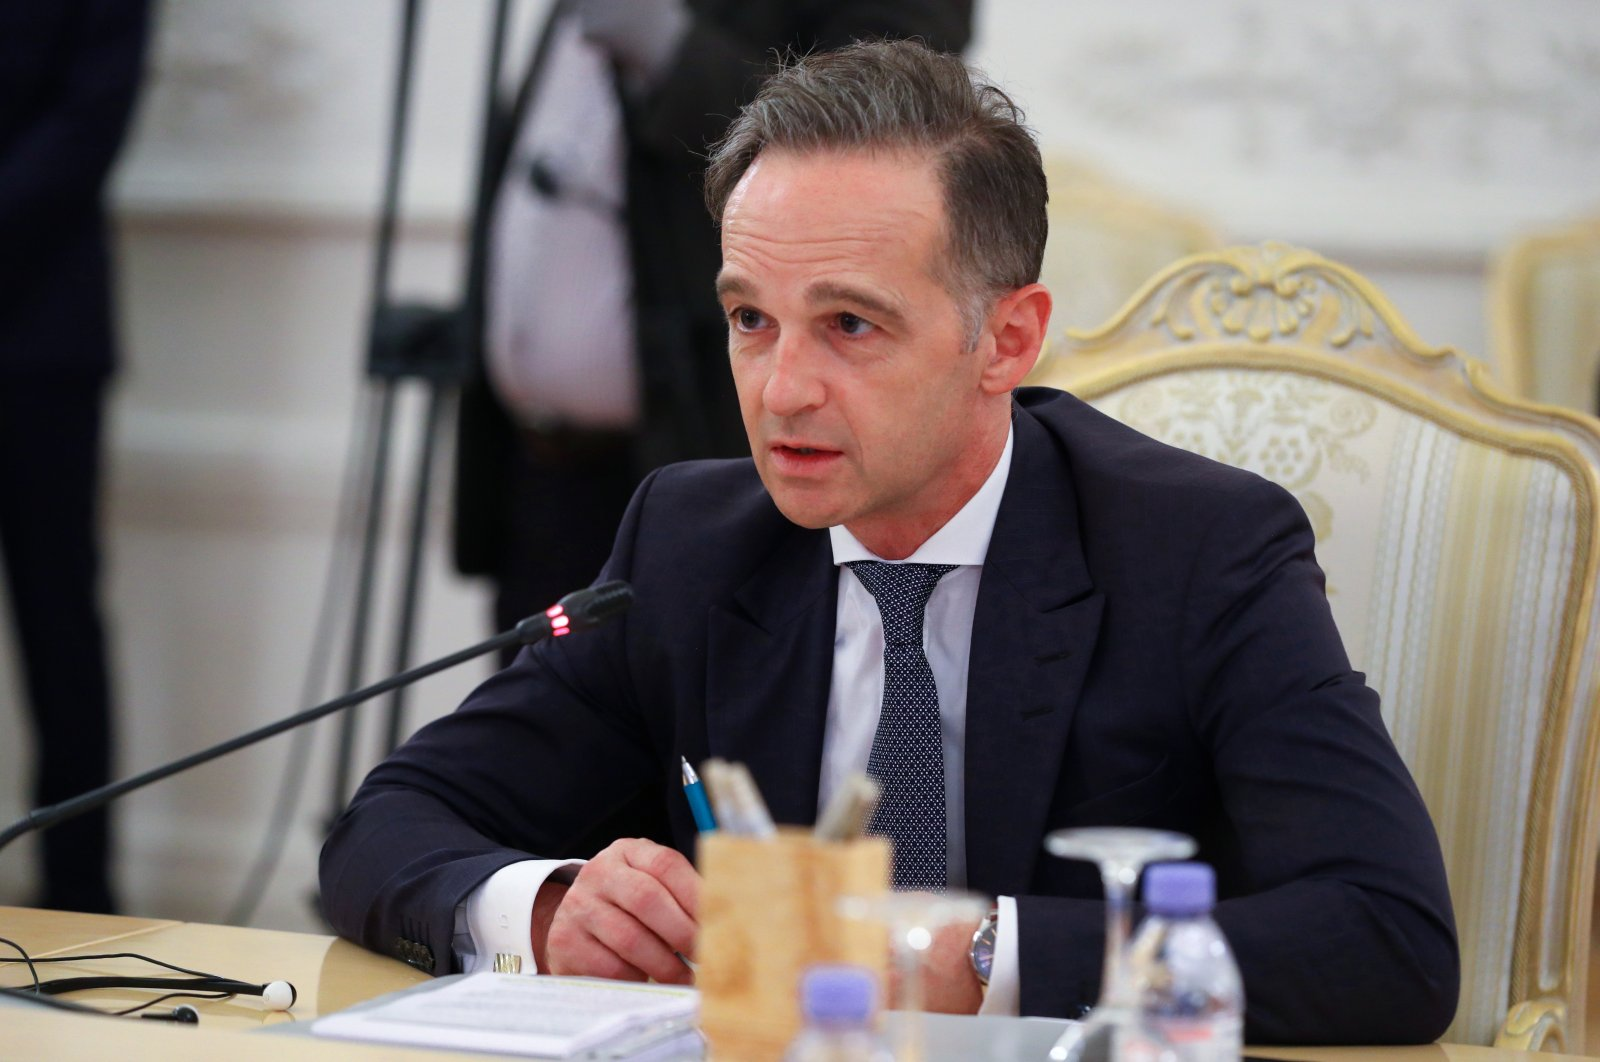 German Foreign Minister Heiko Maas speaks during a meeting with Russian Foreign Minister Sergei Lavrov in Moscow, Russia, Aug. 11, 2020. (Russian Foreign Ministry/Handout via Reuters)